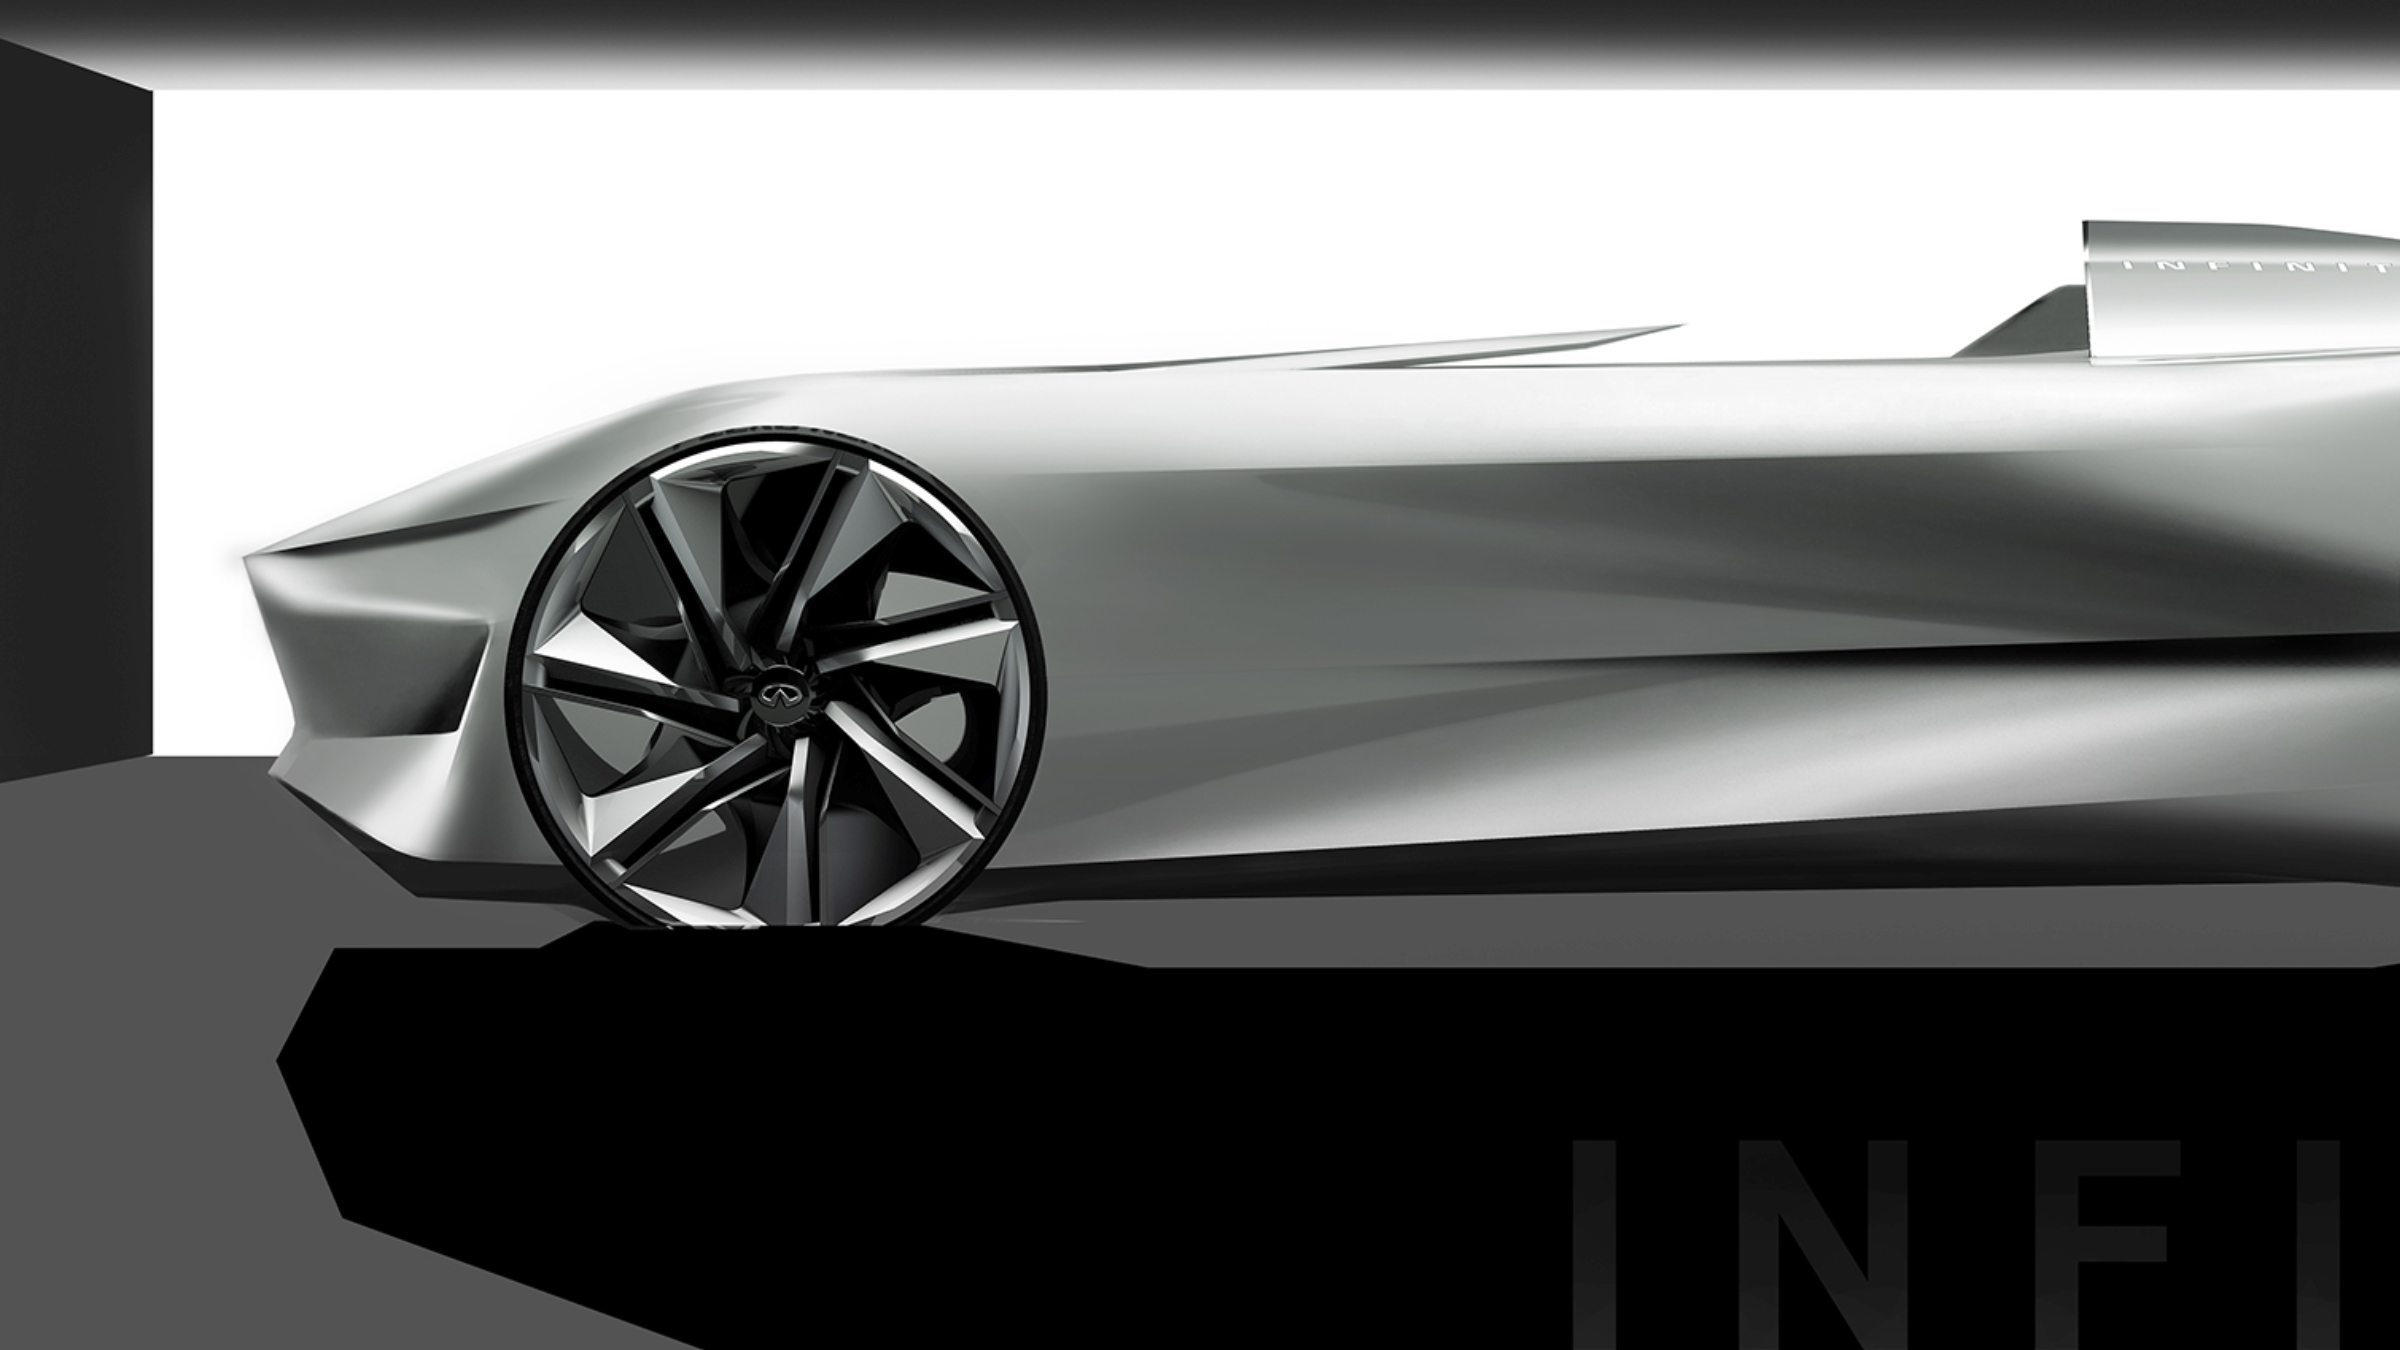 Infiniti Prototype 10 Concept Car Head Part Design Dark Shot